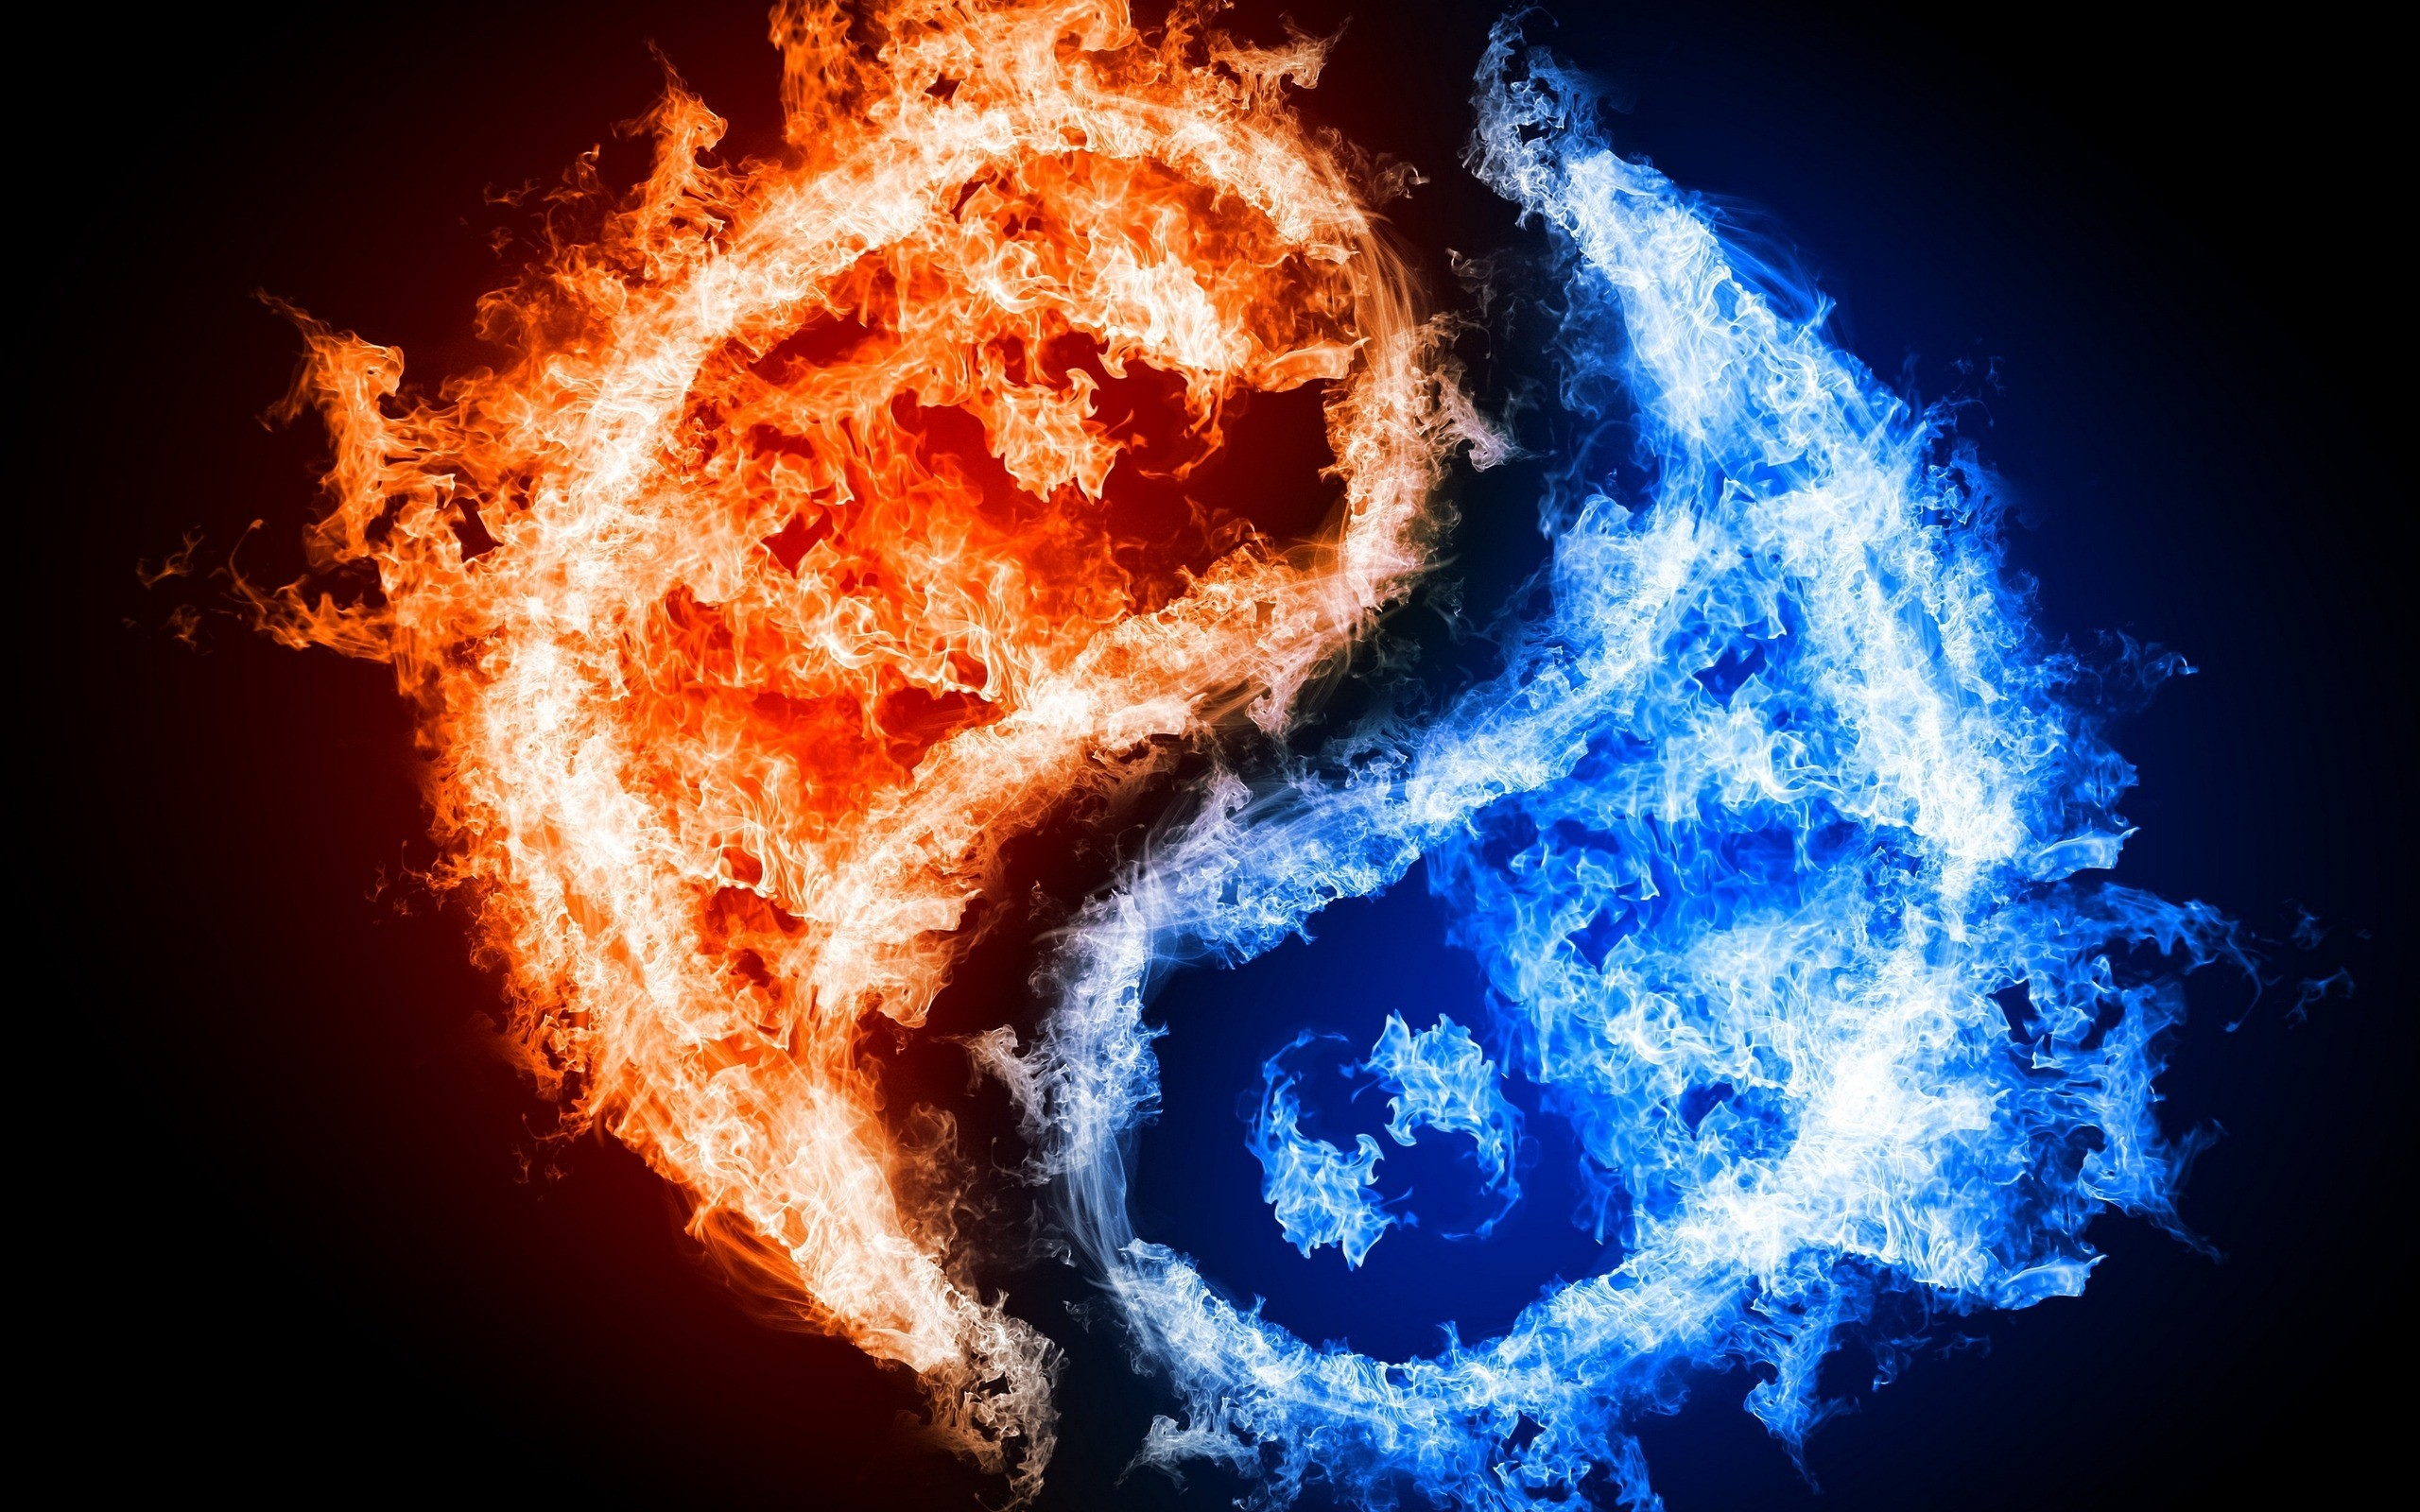 2560x1600 - Red and Blue Fire 30